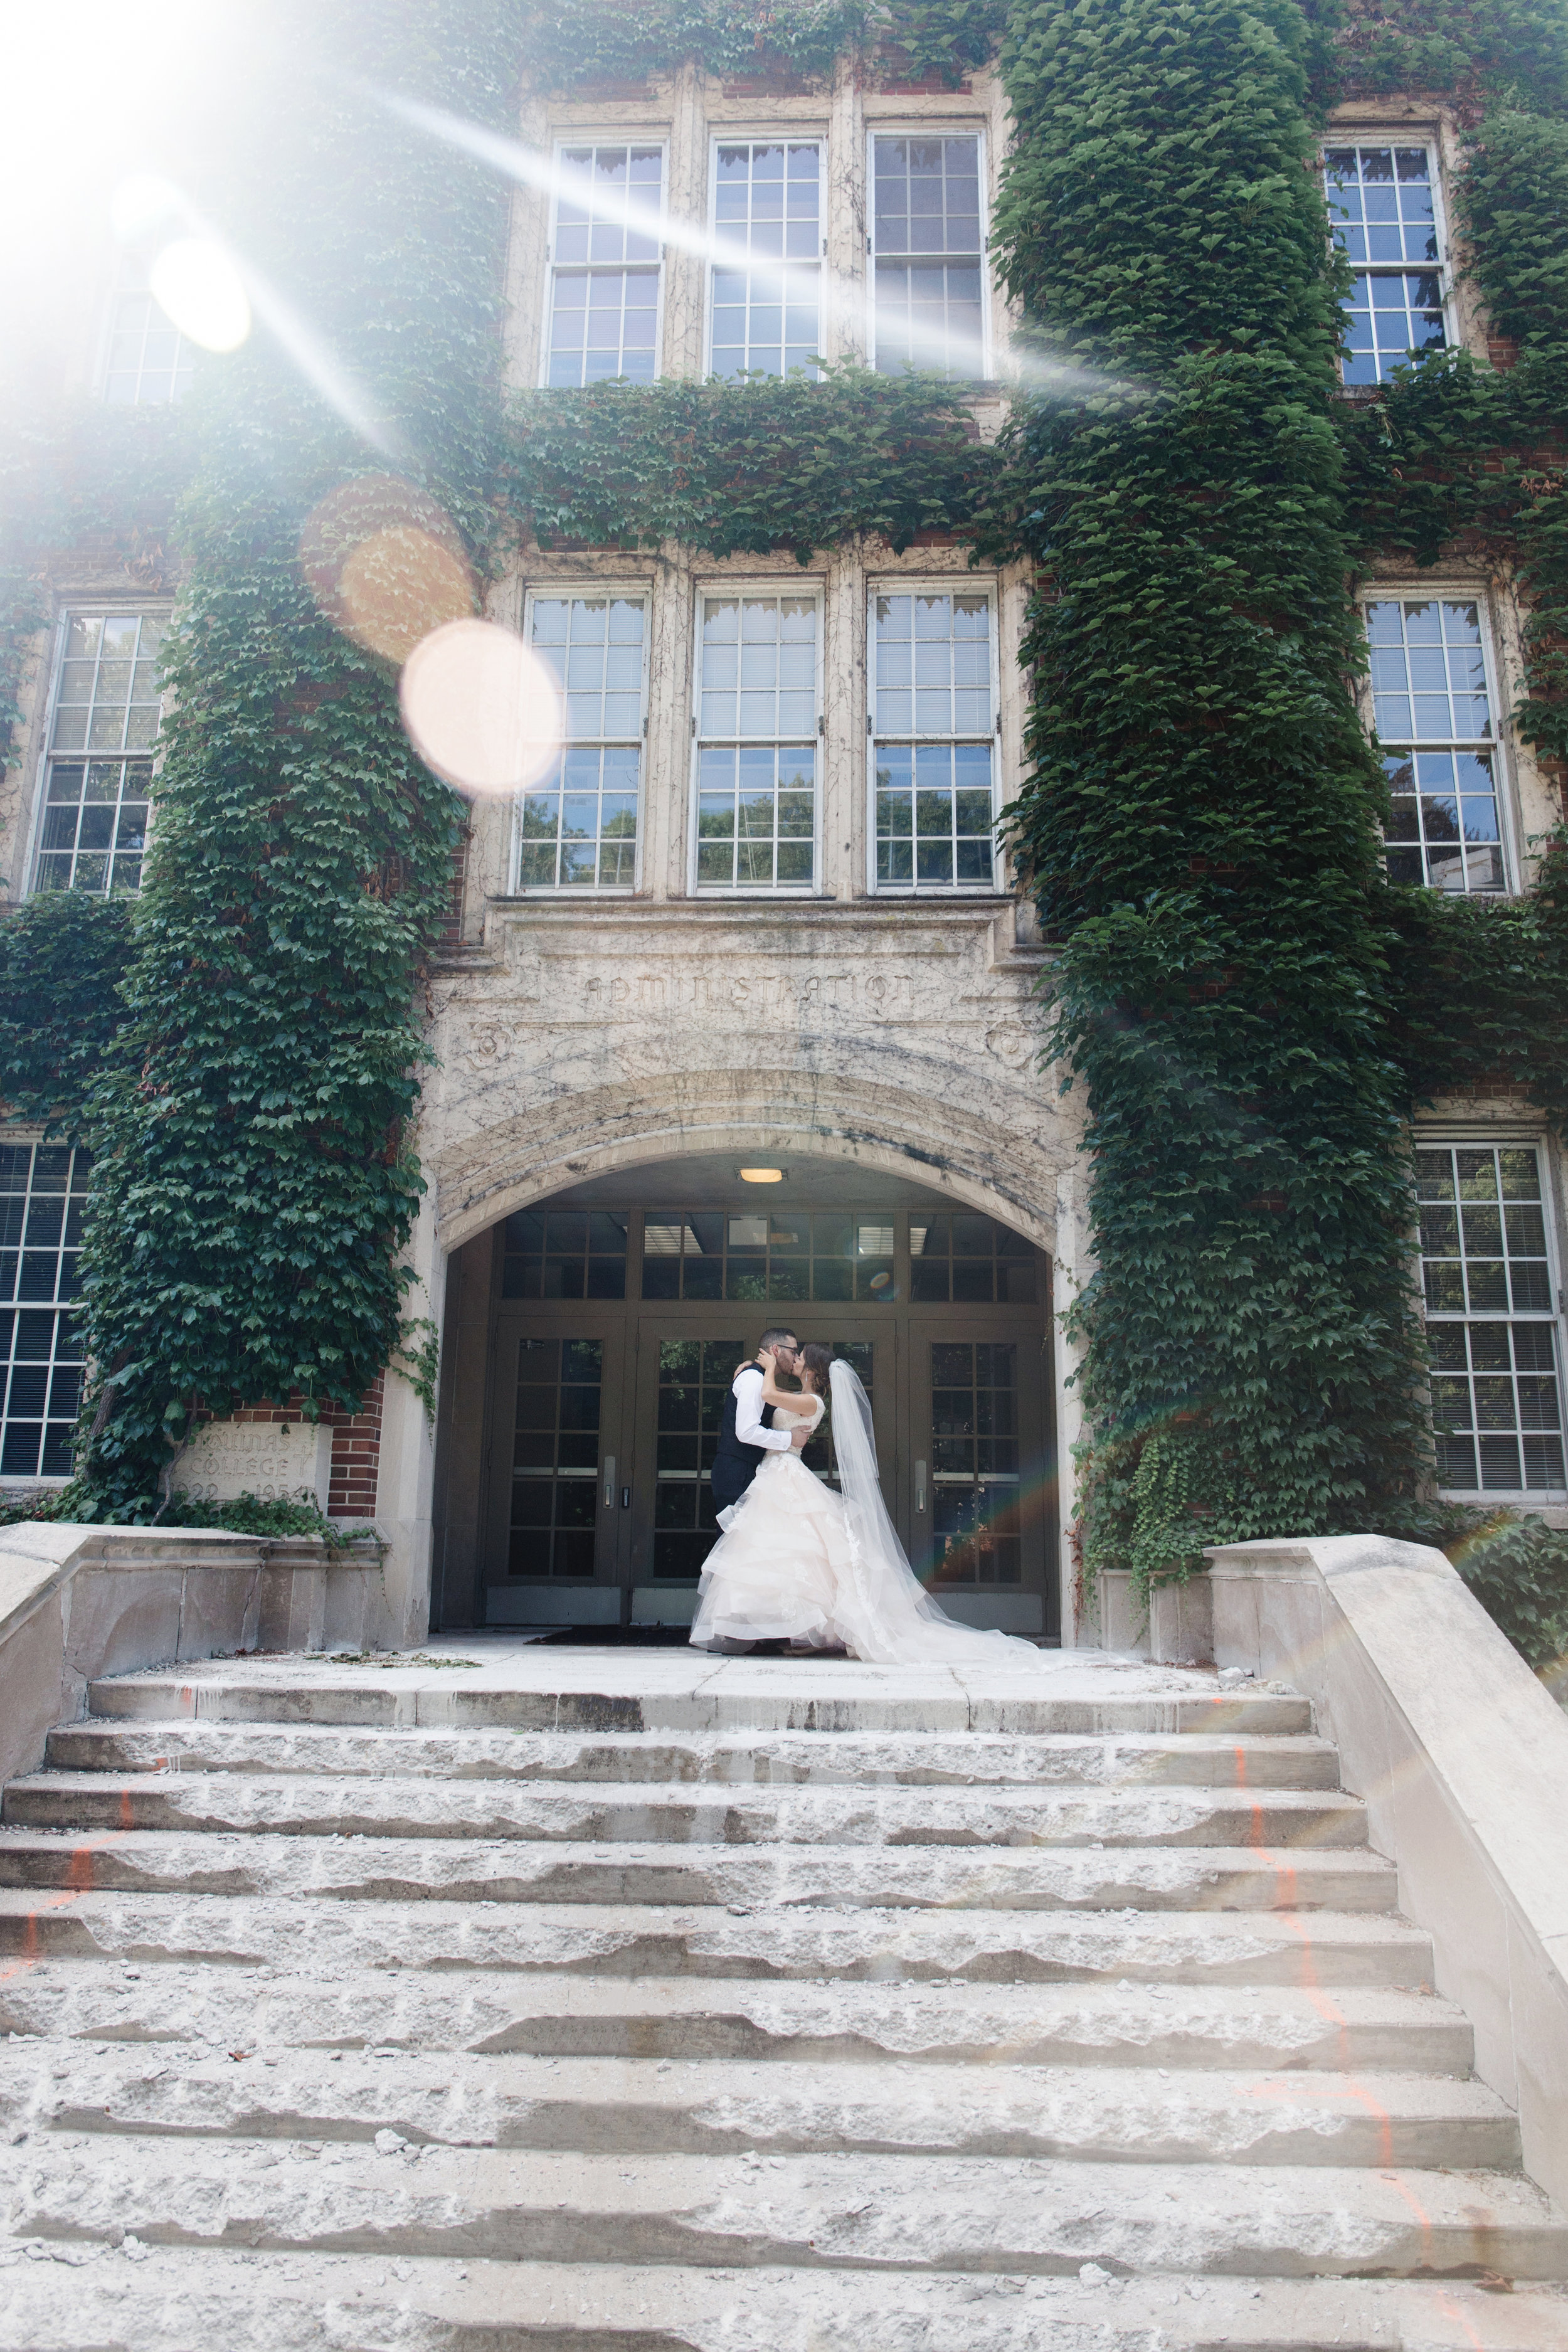 This was one of my favorite shots from the day... some of the college was under construction but this beautiful old building had just the right amount of charm and rustic appeal to pair with a beautiful couple to get the most beautiful shot!